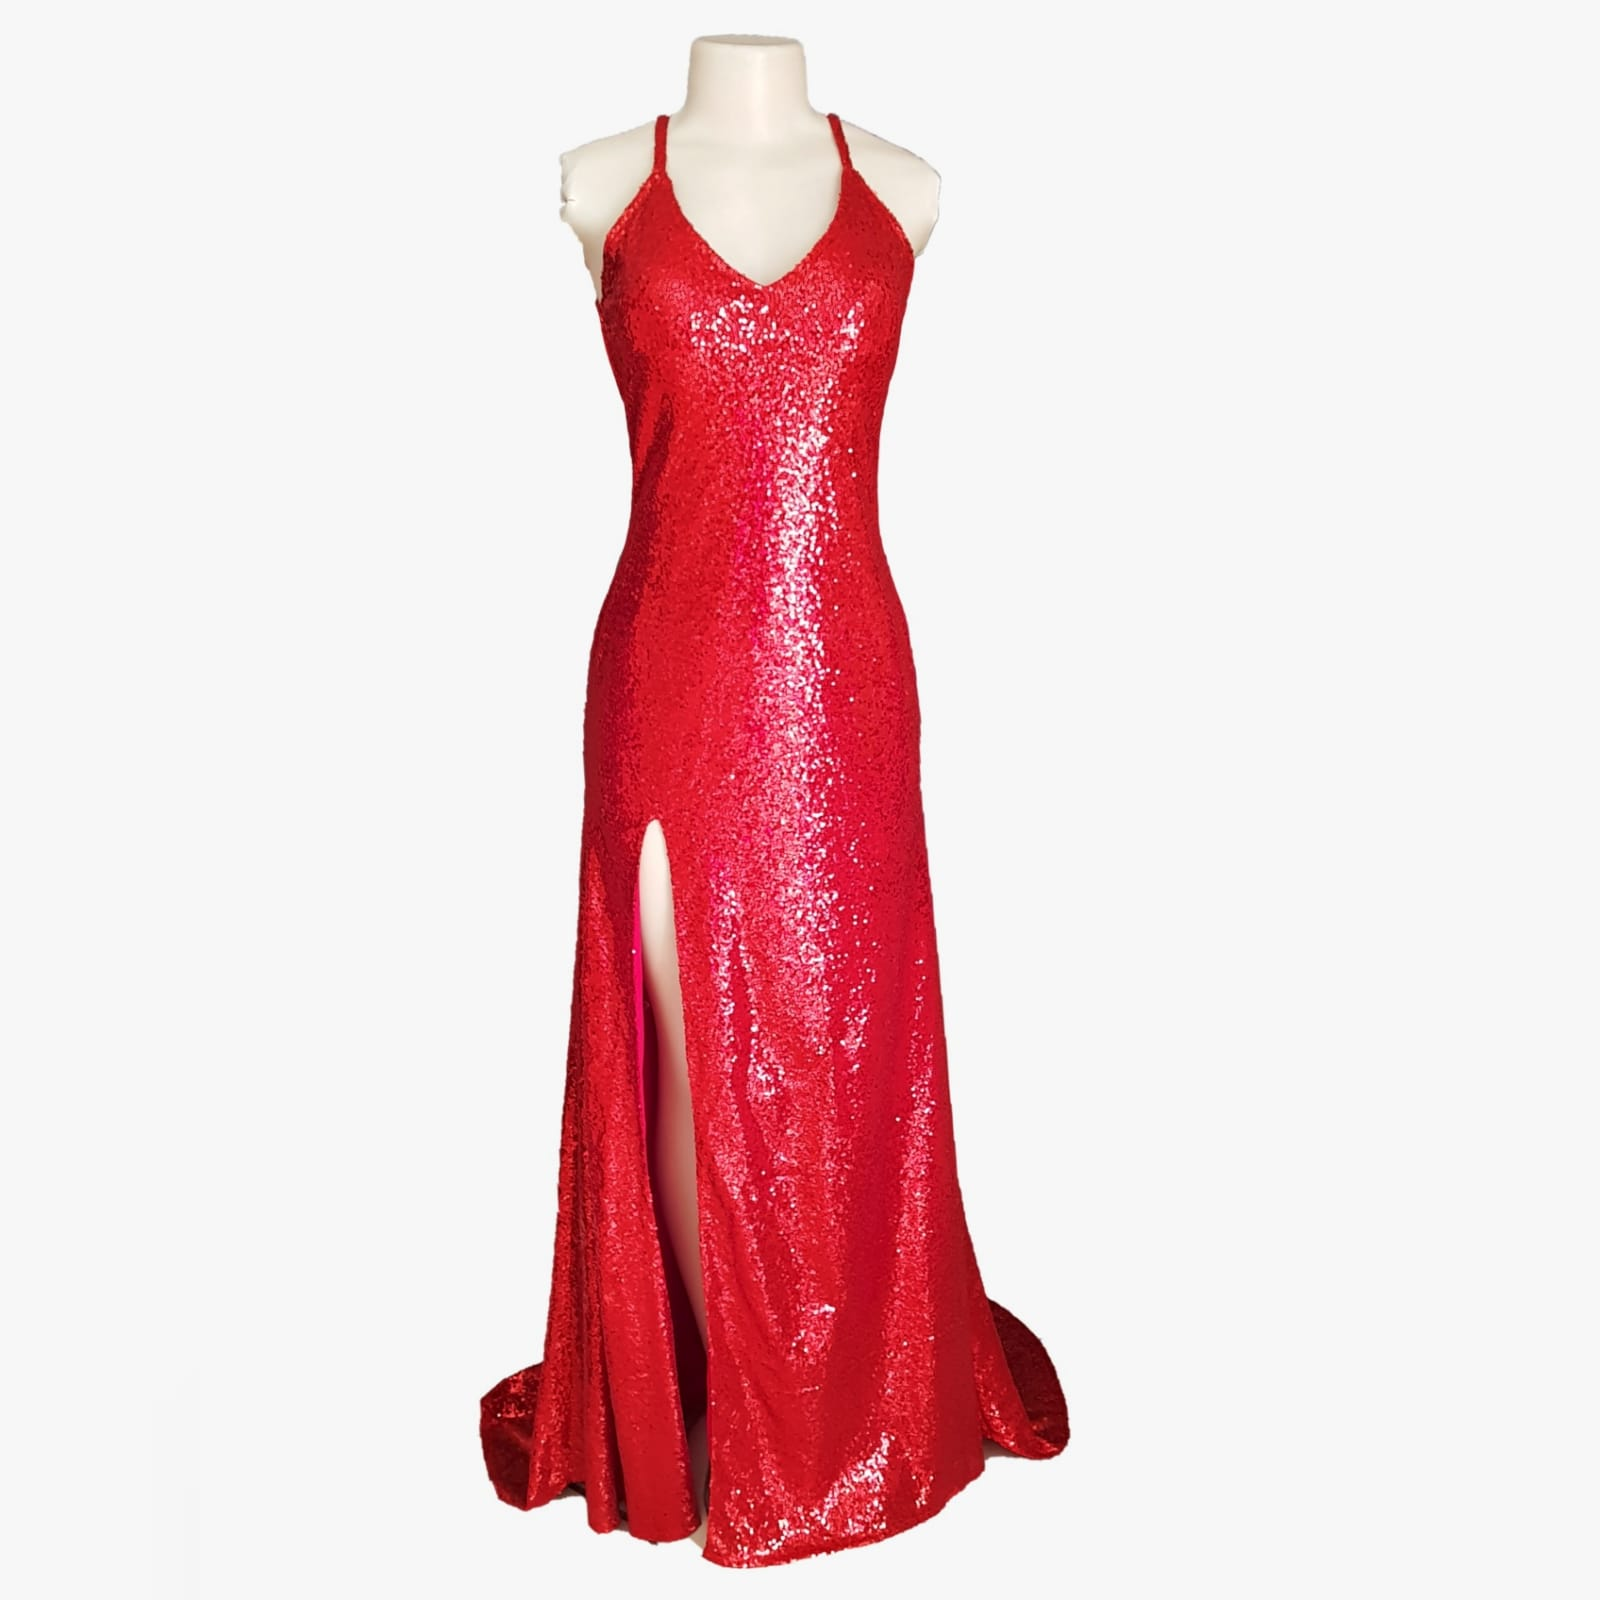 A long red sexy sequins evening dress 6 why not wear red to your next event? A long red sexy sequins evening dress that shows off your confidence. A passionate colour, which will make you feel adventurous. A low naked back with a high slit for a touch of seduction. Wear this design and colour and you will make a statement.